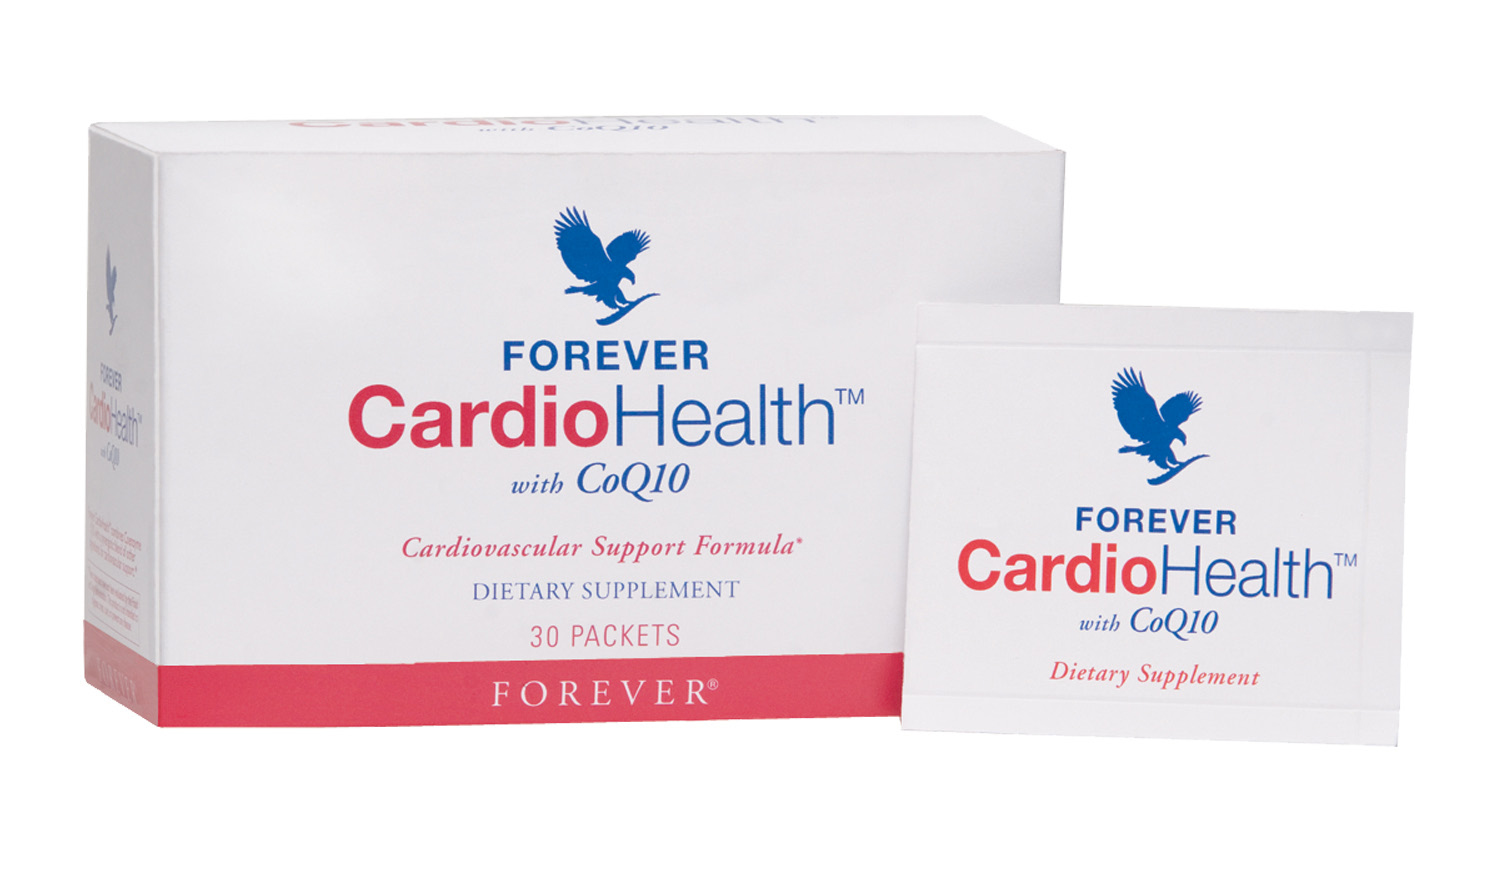 Forever CardioHealth™ with CoQ10